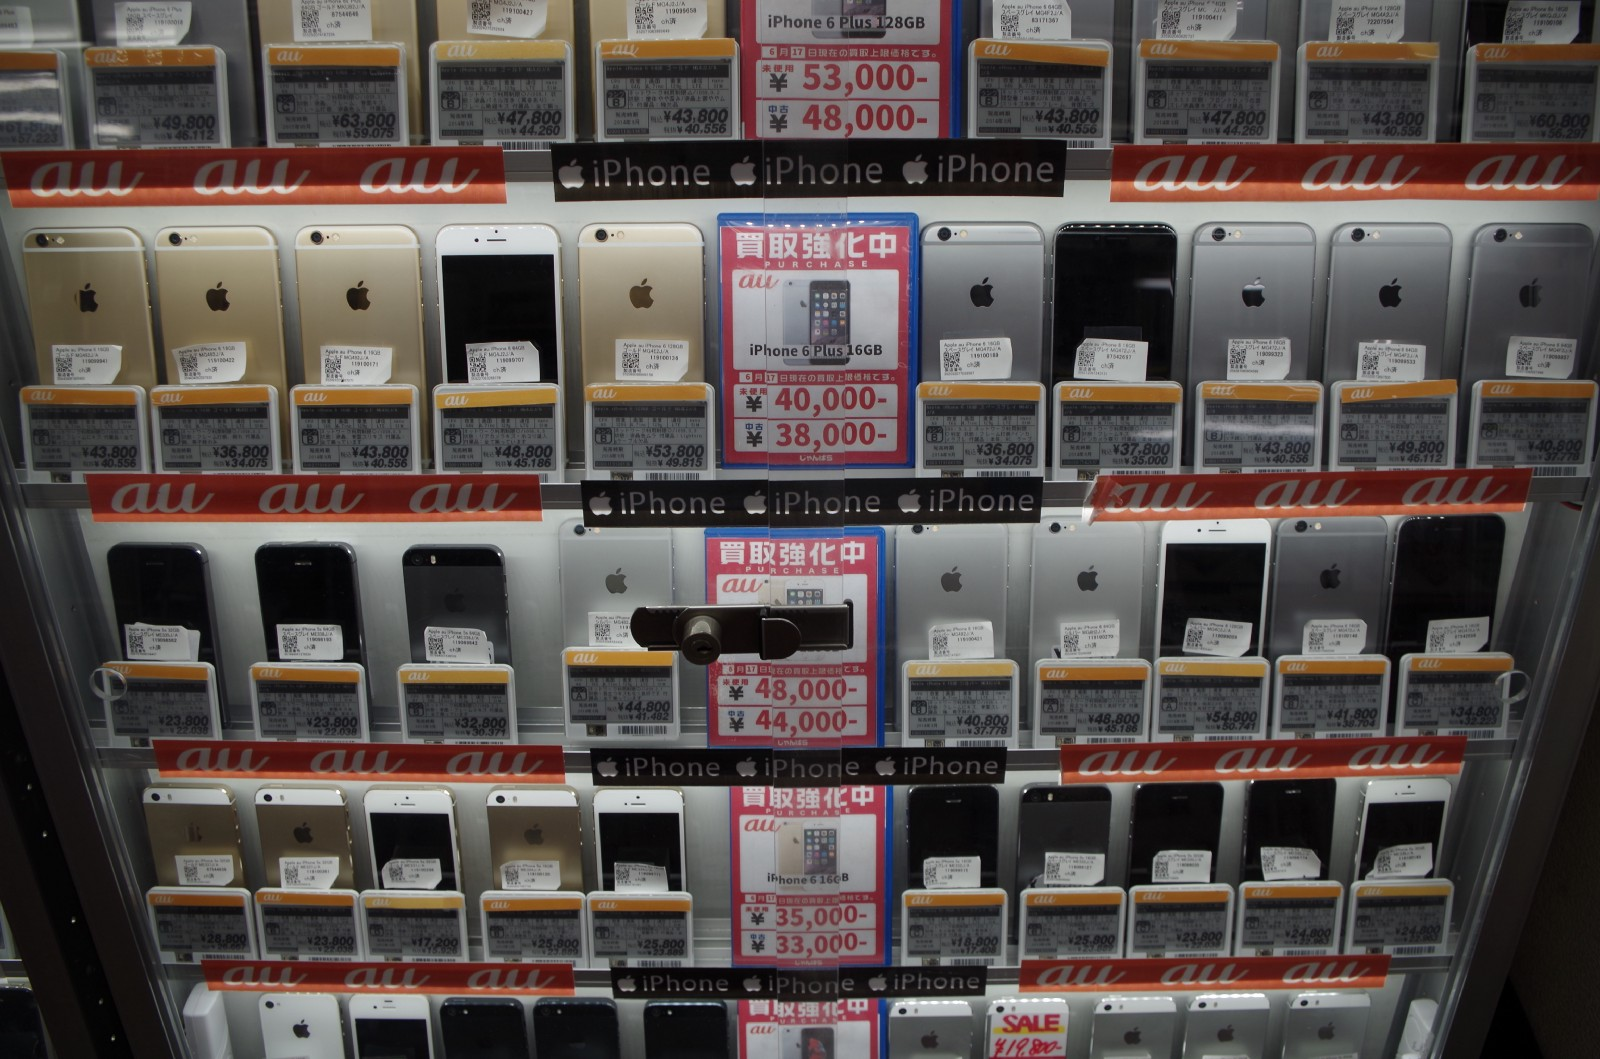 Get iPhone and Mac at Bargain Prices - Japan Web Magazine